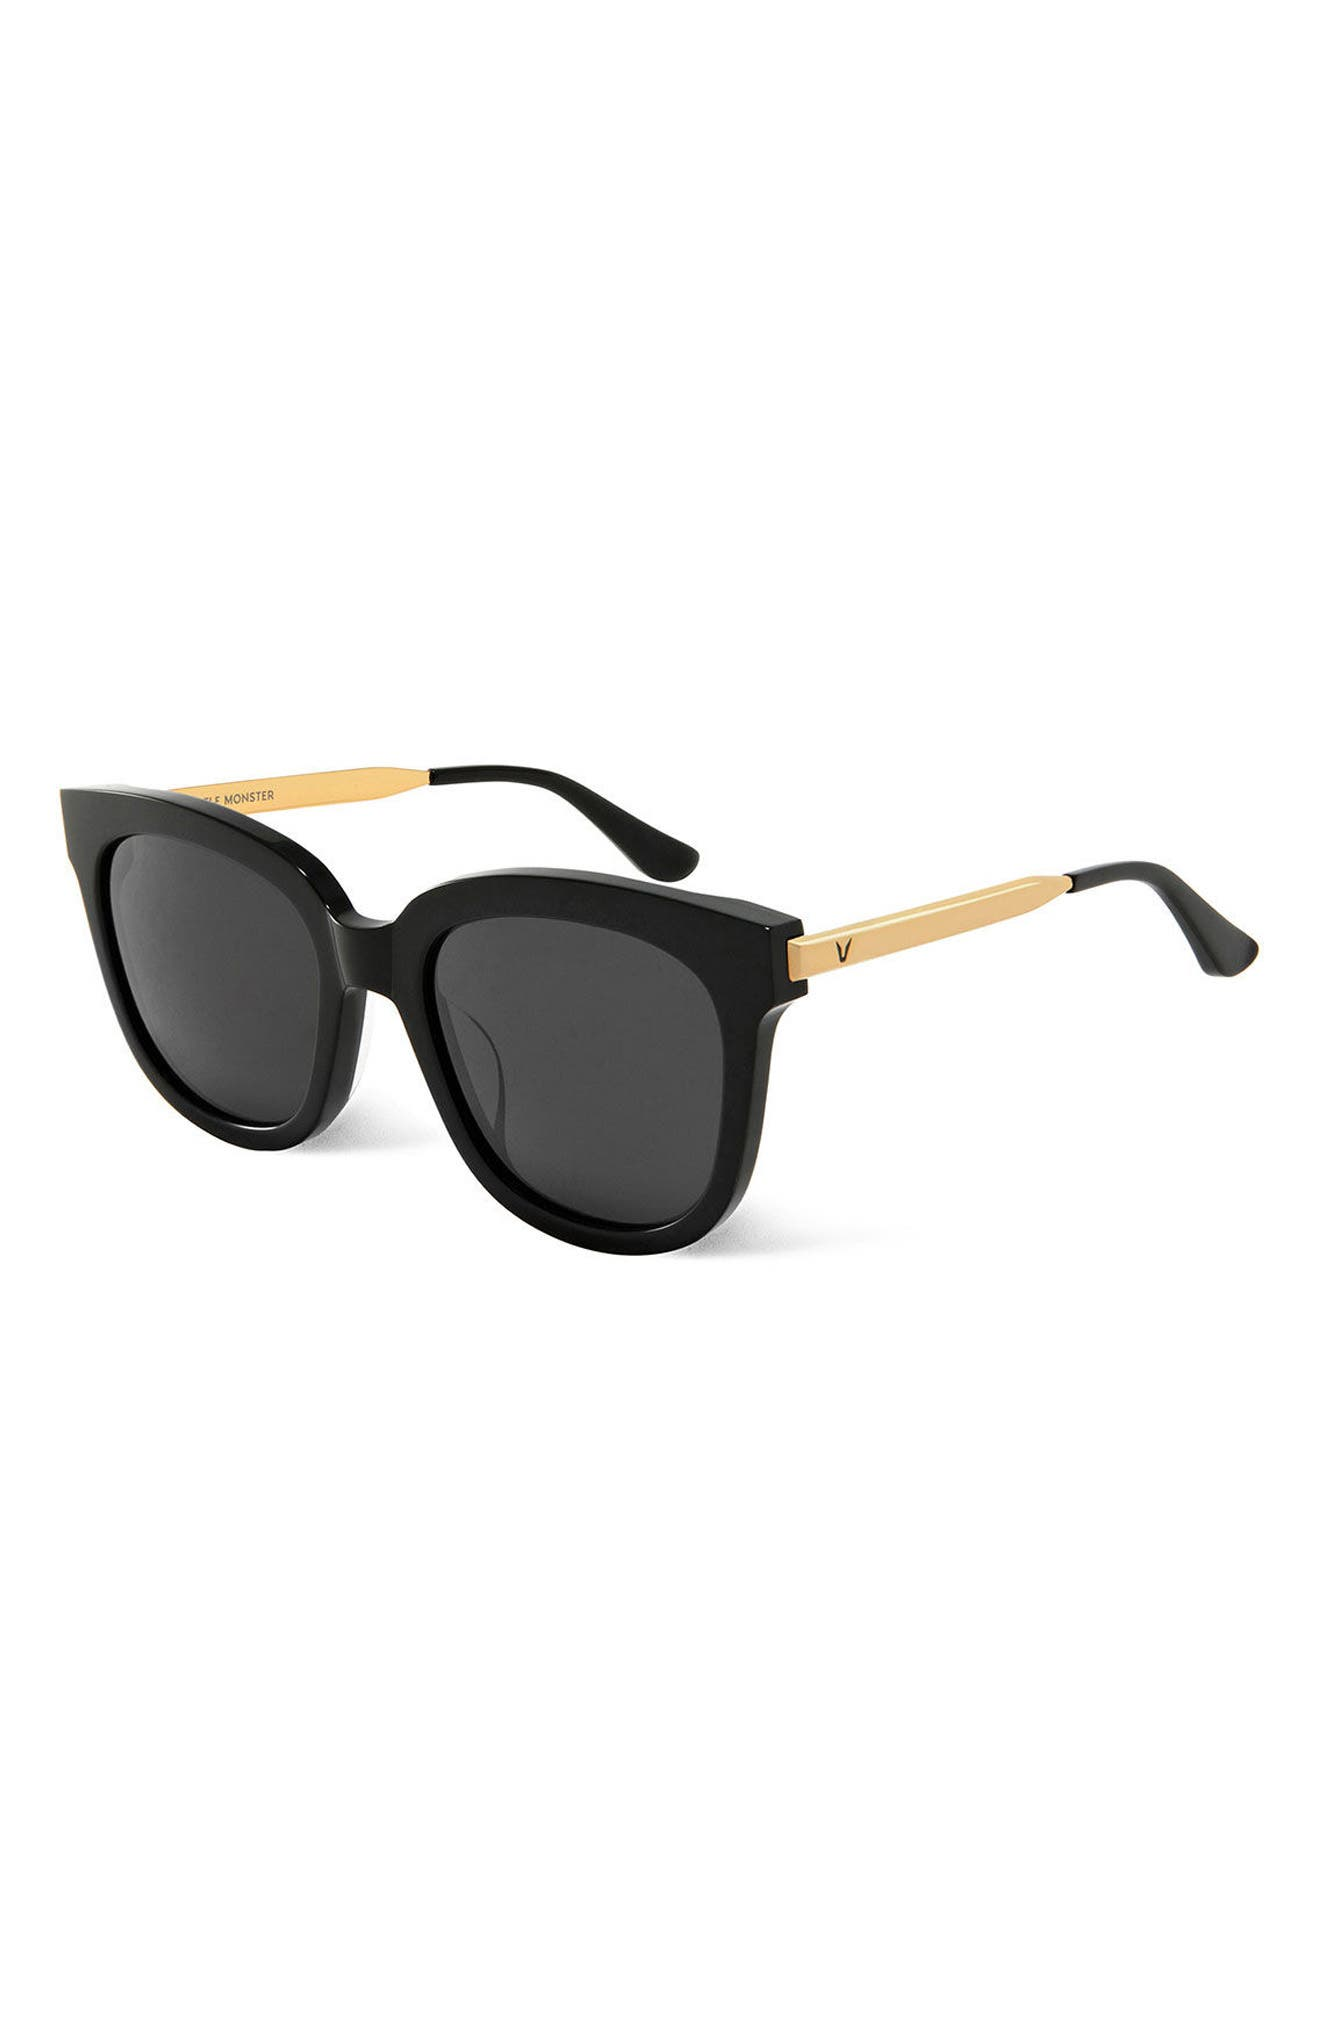 Absente 54mm Sunglasses,                             Alternate thumbnail 21, color,